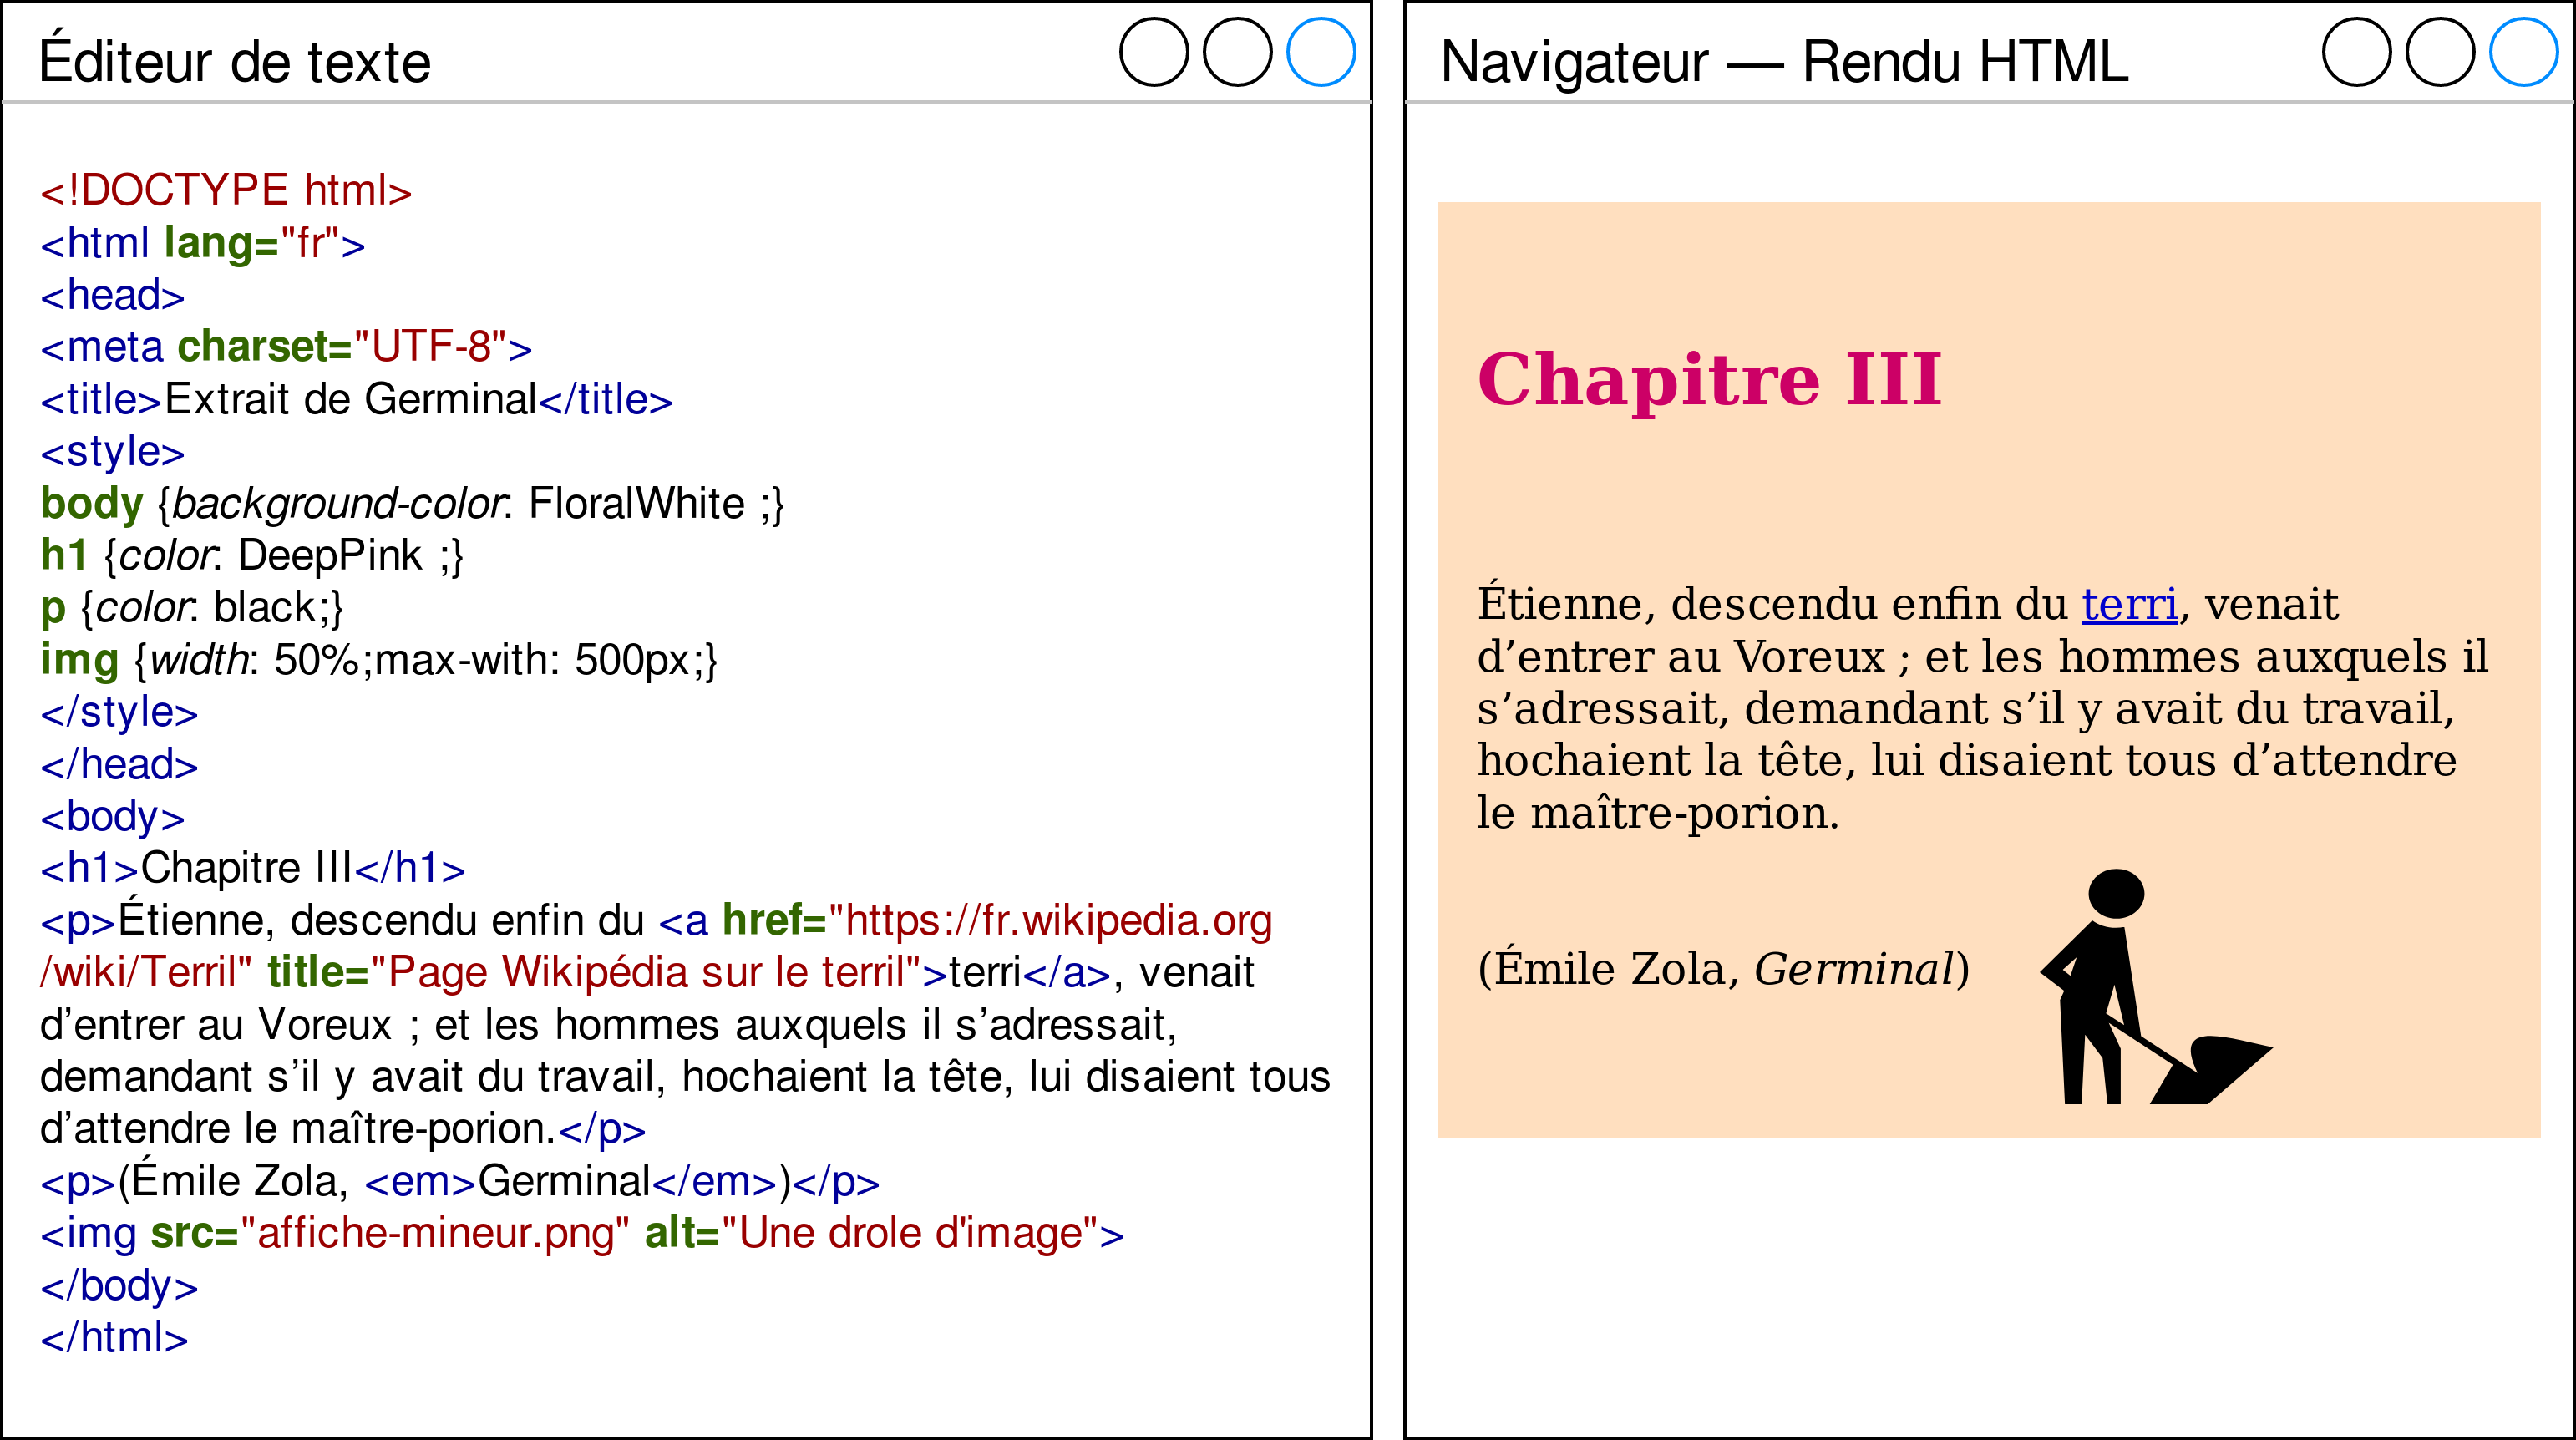 TEX/images/html-mineur.png